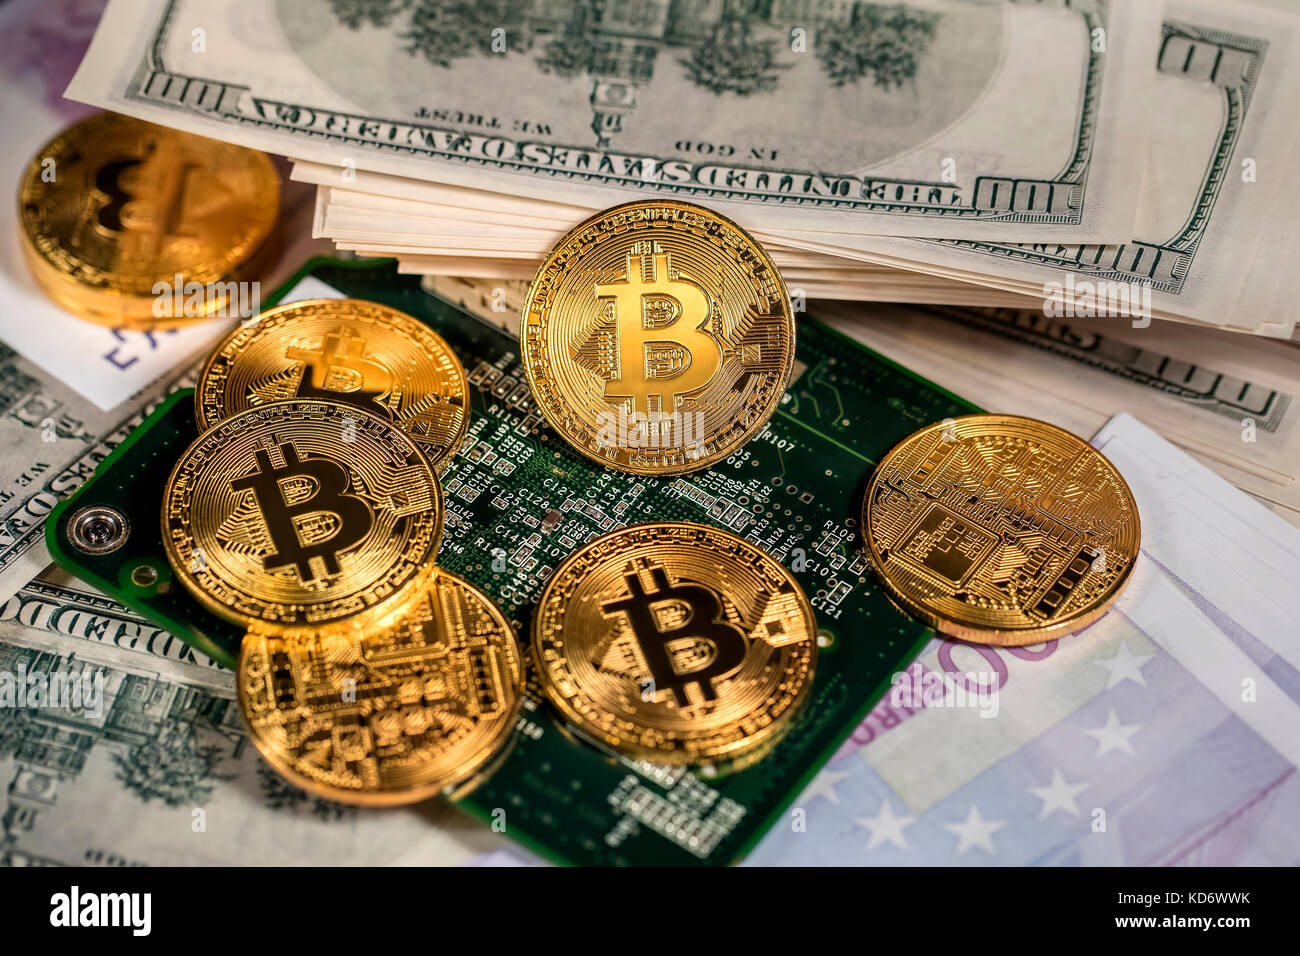 Closeup view of golden coins of Bitcoin on hundred dollars bills. - Stock Image